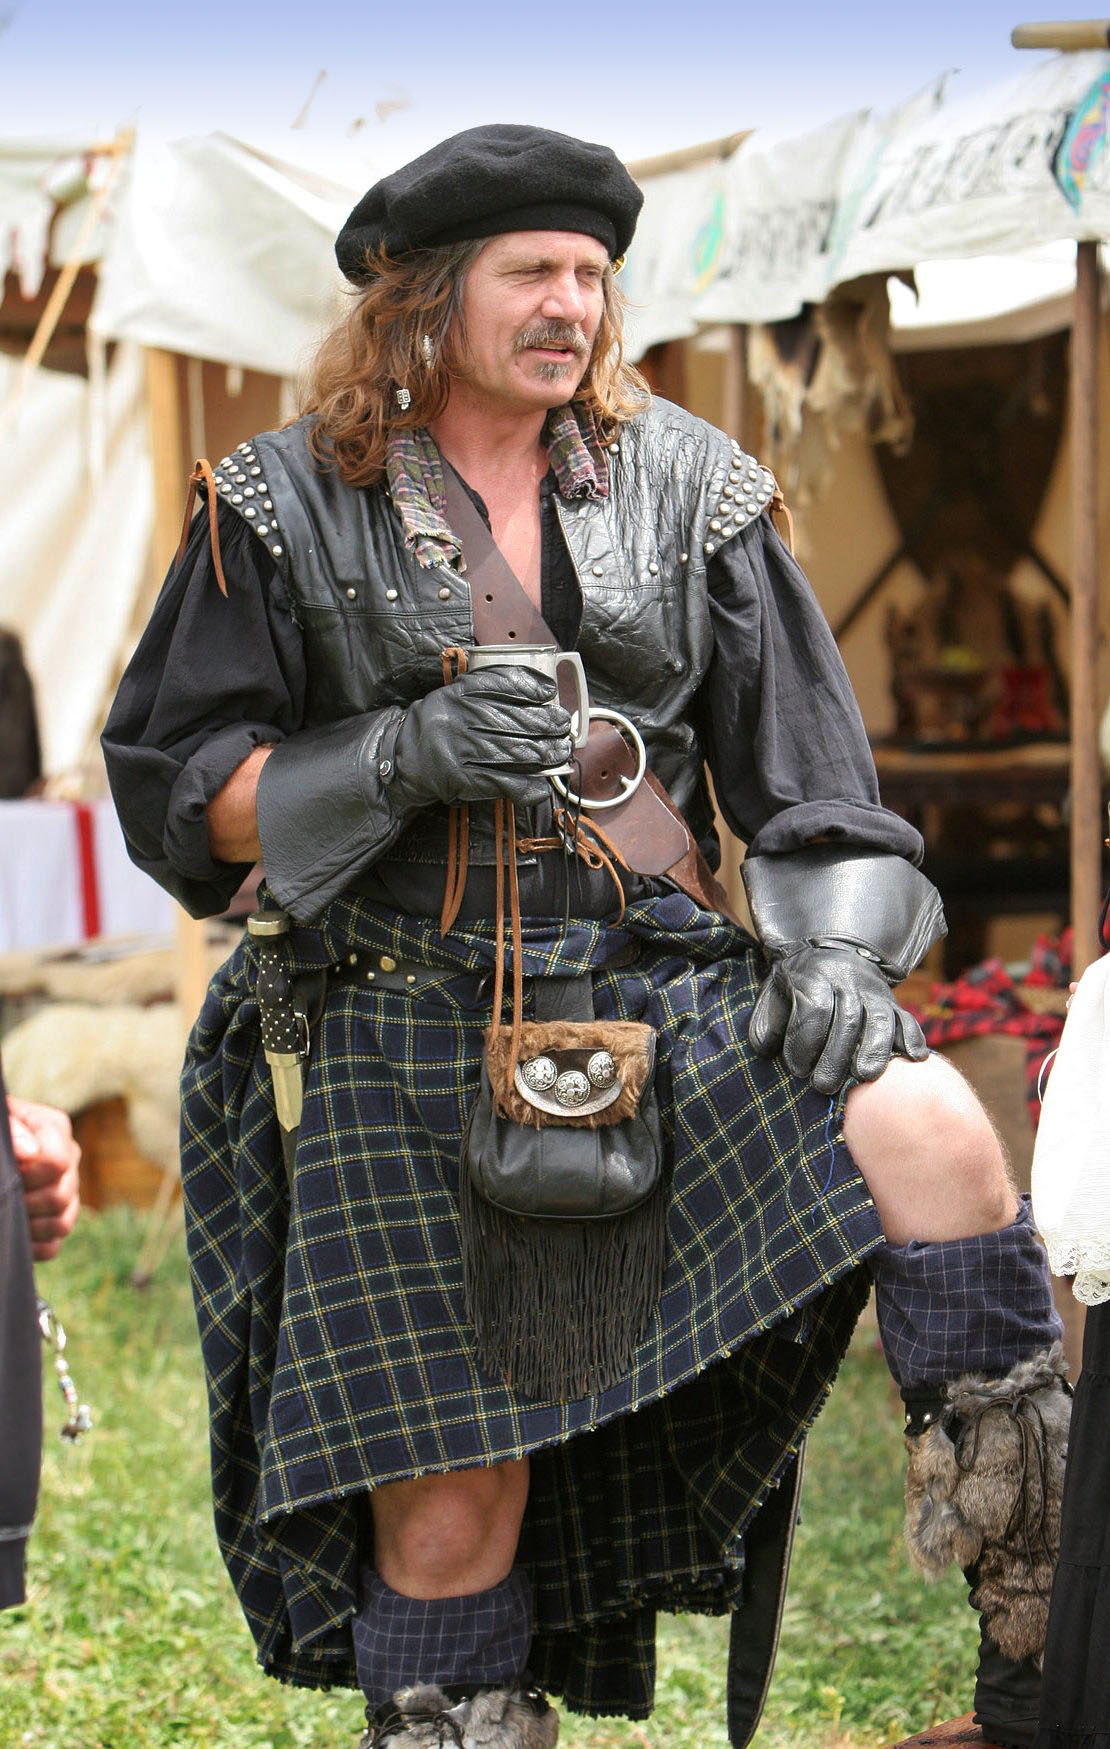 File:Highlander-kilt.jpg - Wikimedia Commons